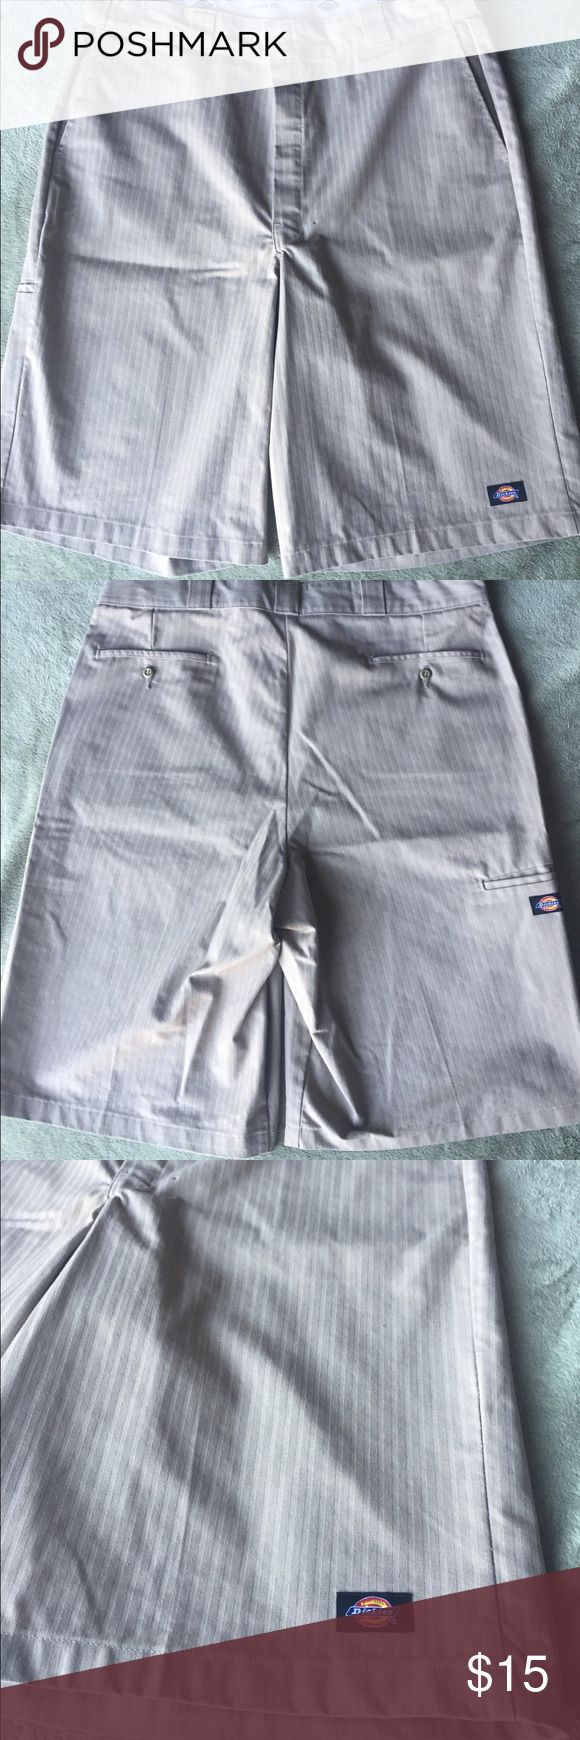 Men's size 38, pinstriped khaki Dickies shorts! Men's size 38, loose fit, pinstriped khaki Dickies shorts! Please see all photos!!! These shorts are practically brand new! They would be in perfect condition if it wasn't for the little tiny spot (shown in last photo). You really can't notice it unless you are staring right at the fly.... lol. Also has cell phone pocket! Dickies Shorts Flat Front